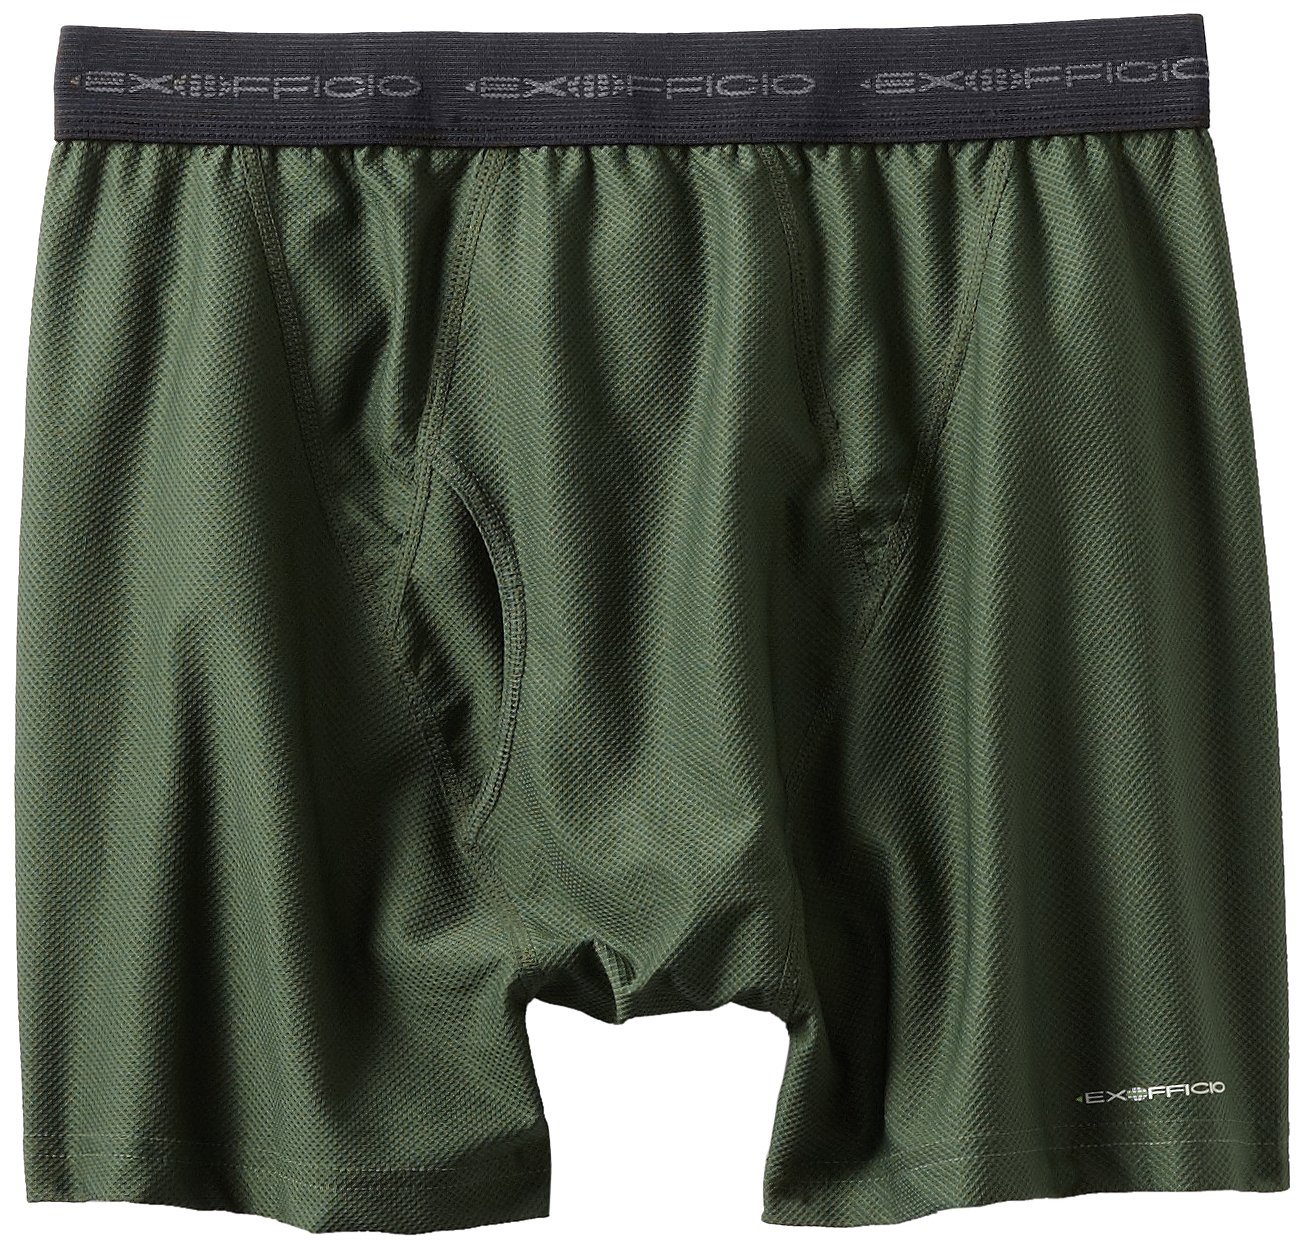 ExOfficio Men's Give-N-Go Boxer Brief Deep Palm